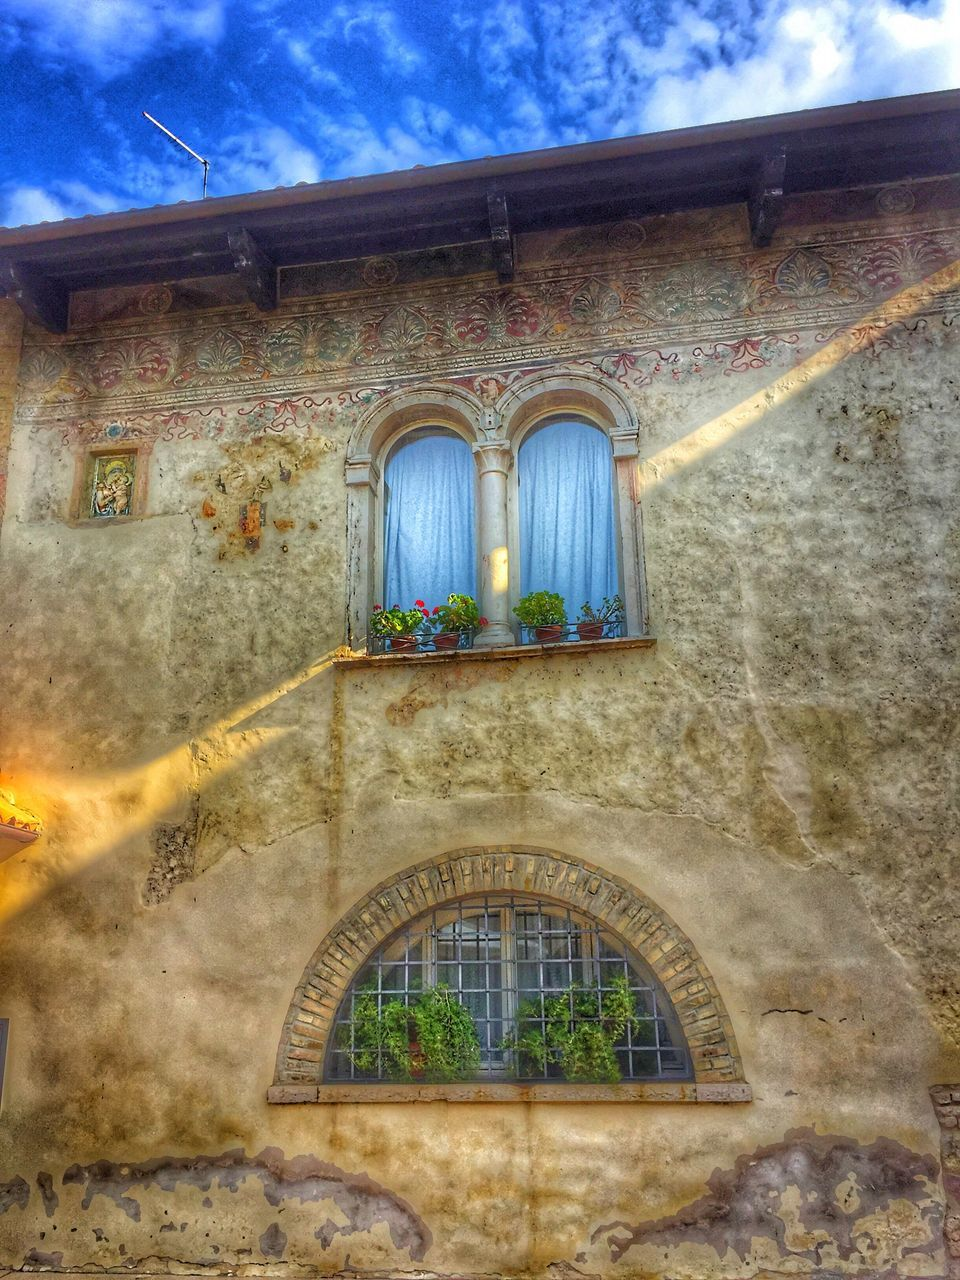 architecture, window, built structure, building exterior, low angle view, arch, day, no people, religion, place of worship, outdoors, sky